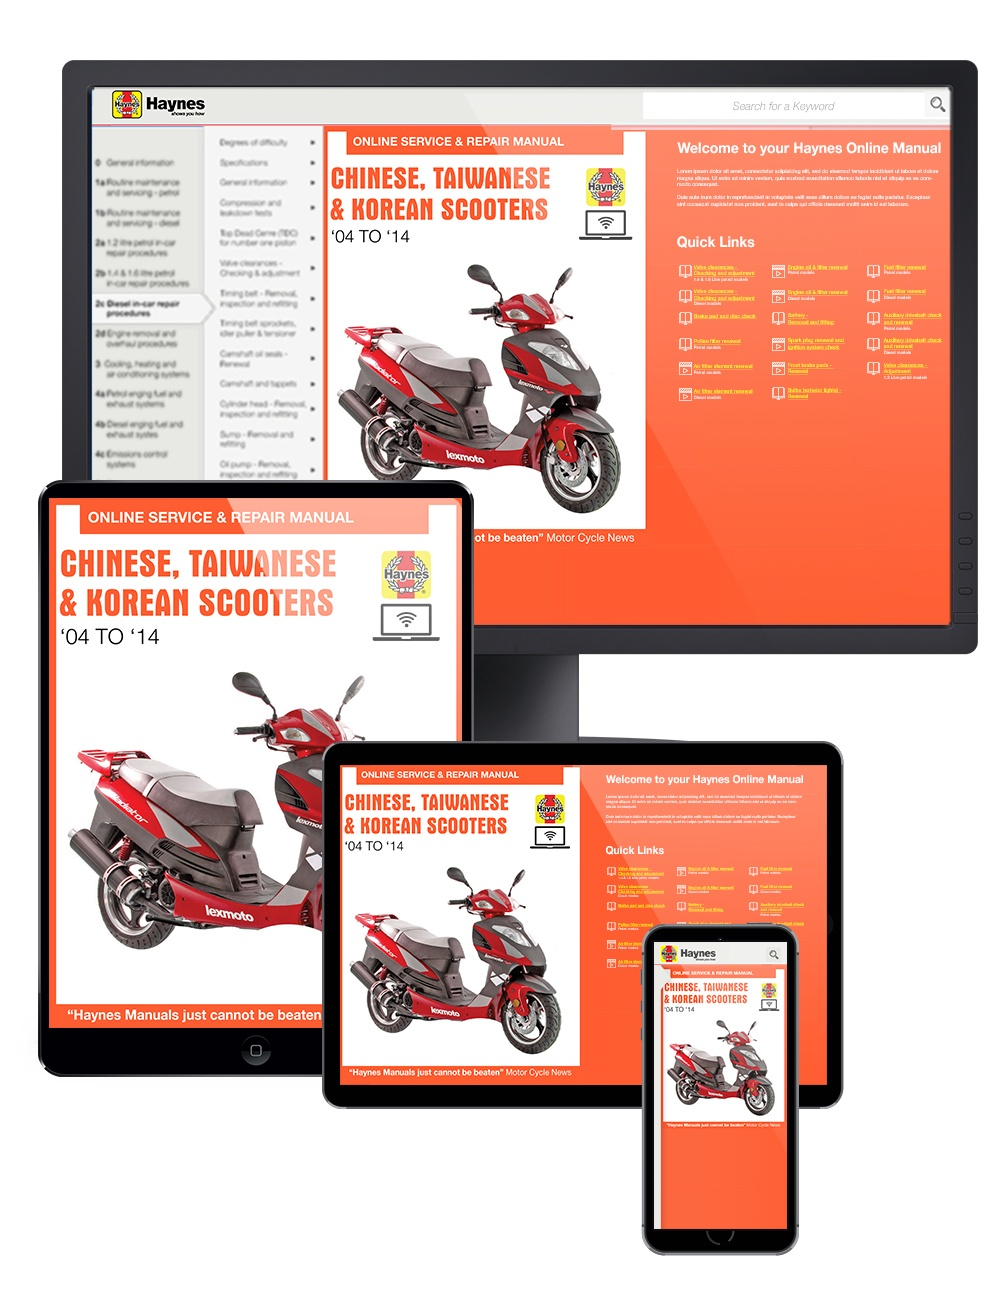 Manual cover for Chinese, Taiwanese & Korean Scooters 50cc, 125cc and 150cc (2004-2014) Haynes Online Manual